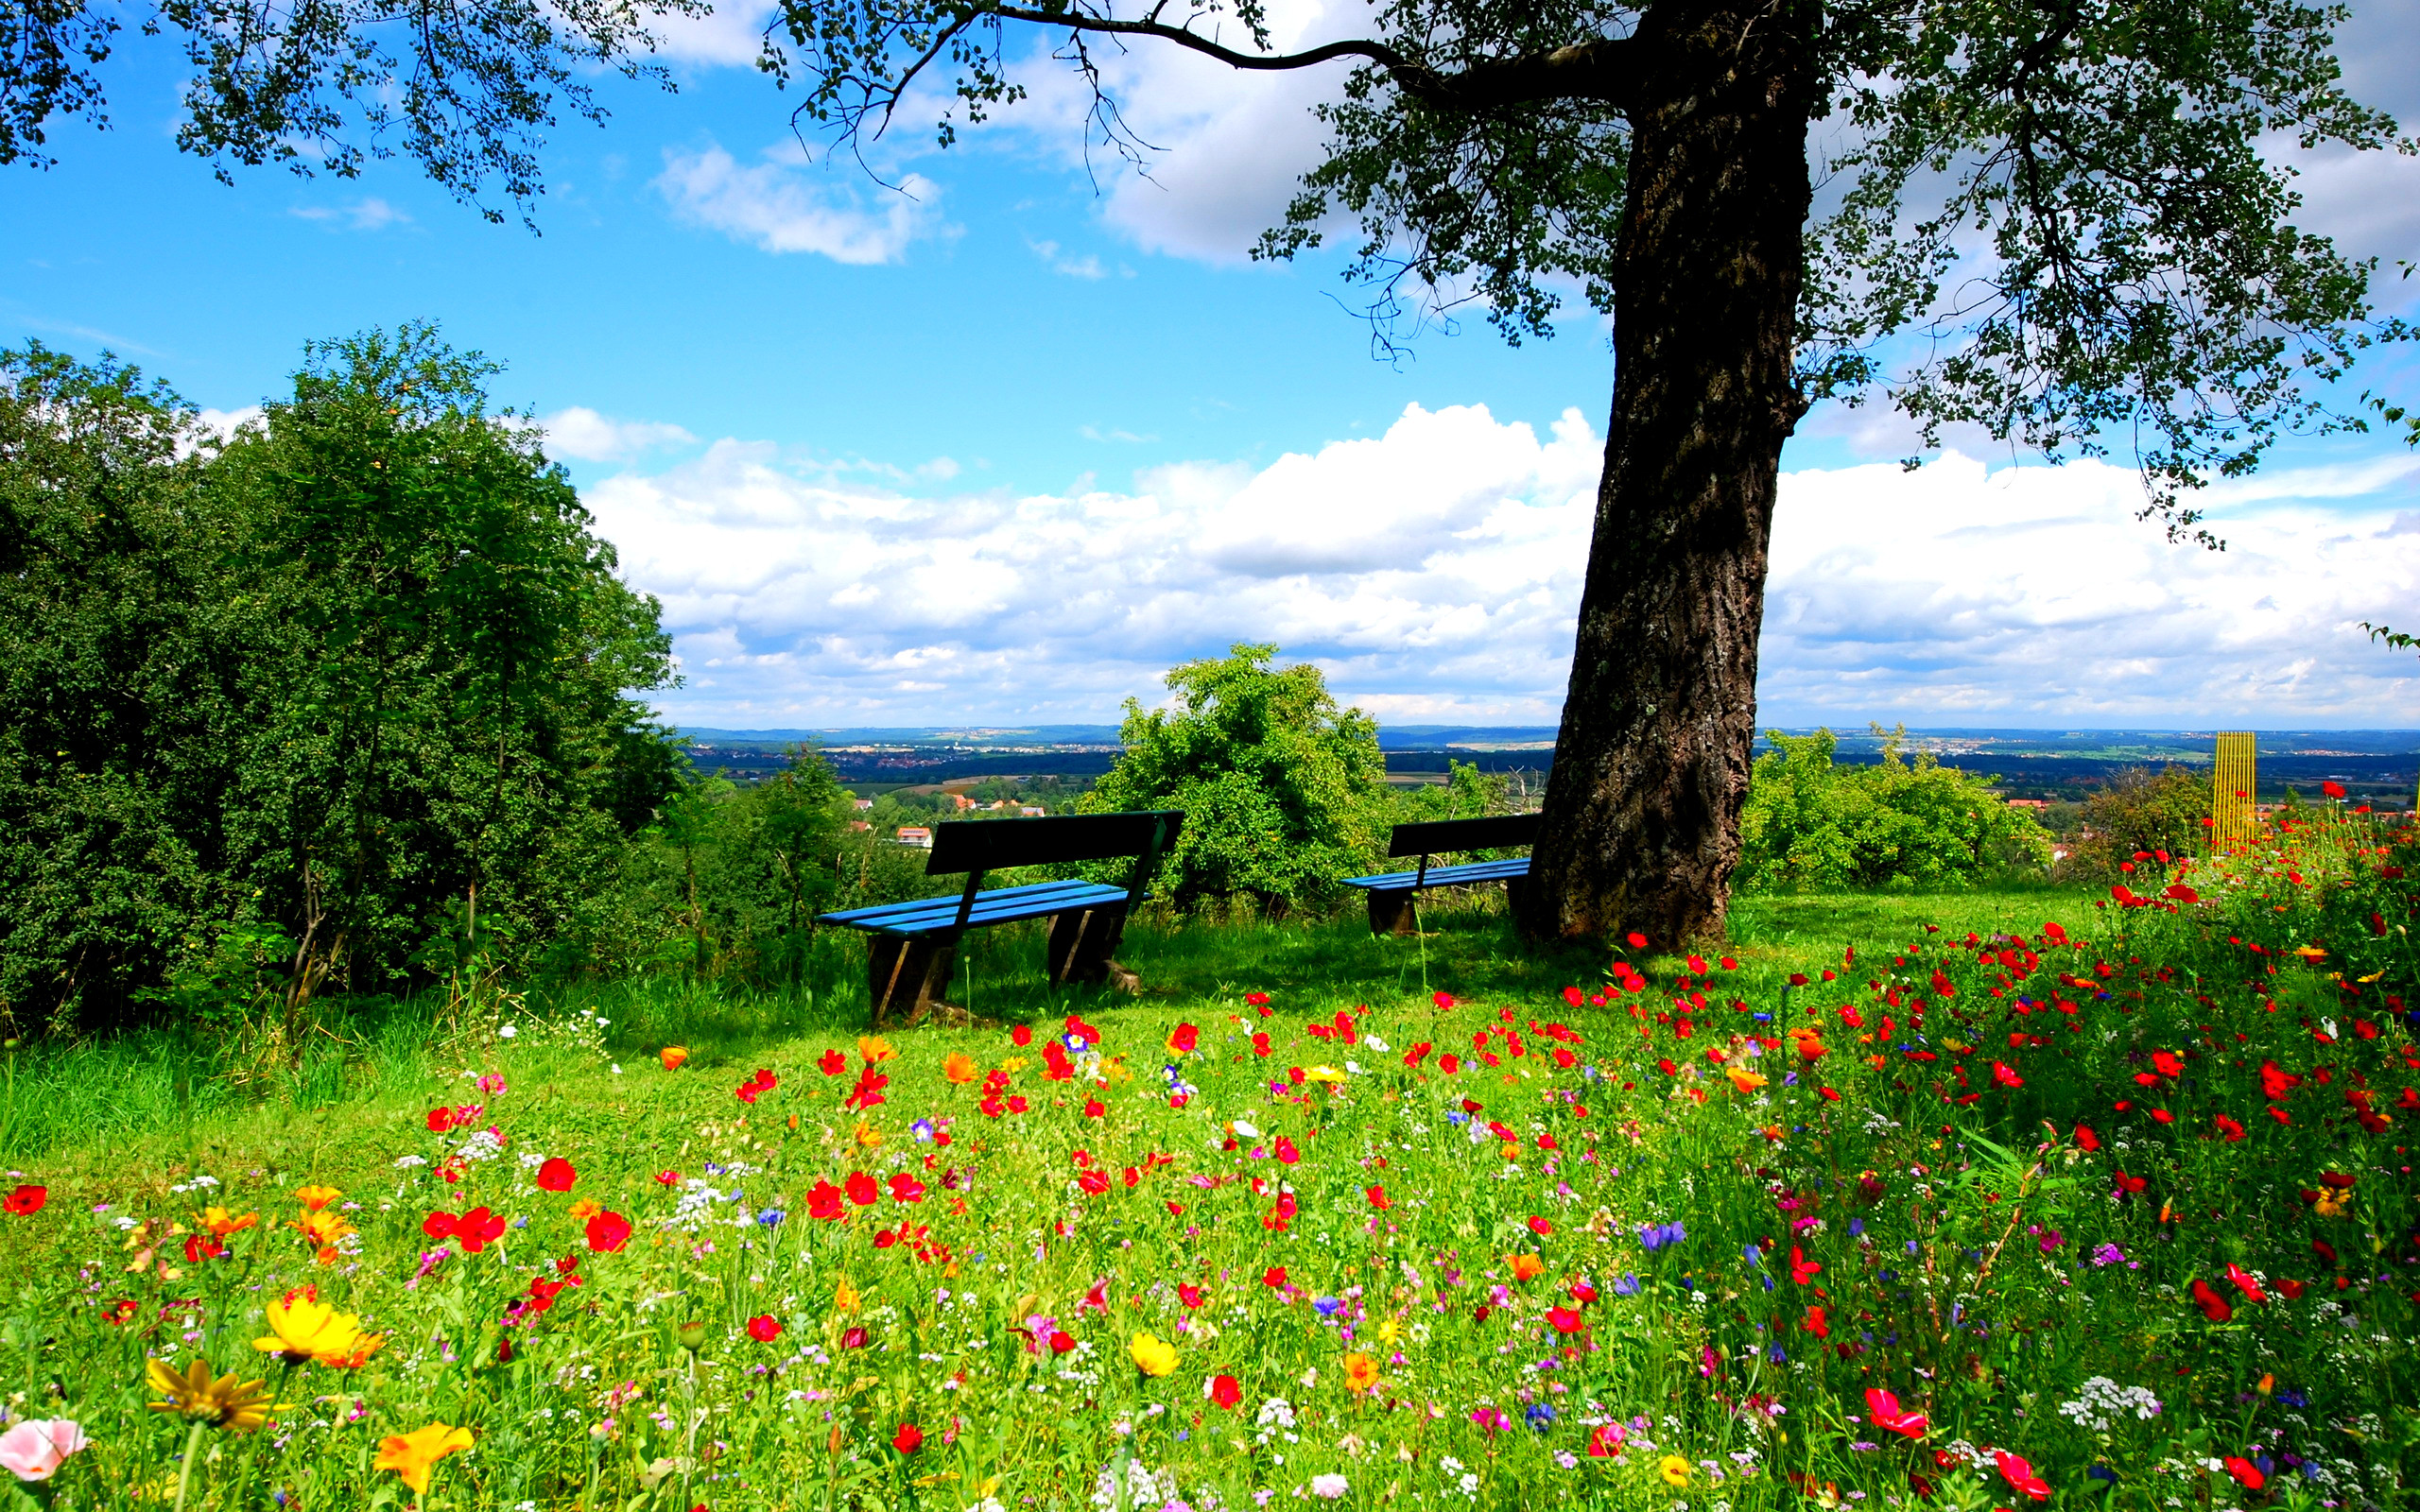 4363_A-field-of-colorful-flowers-beautiful-nature-landscape